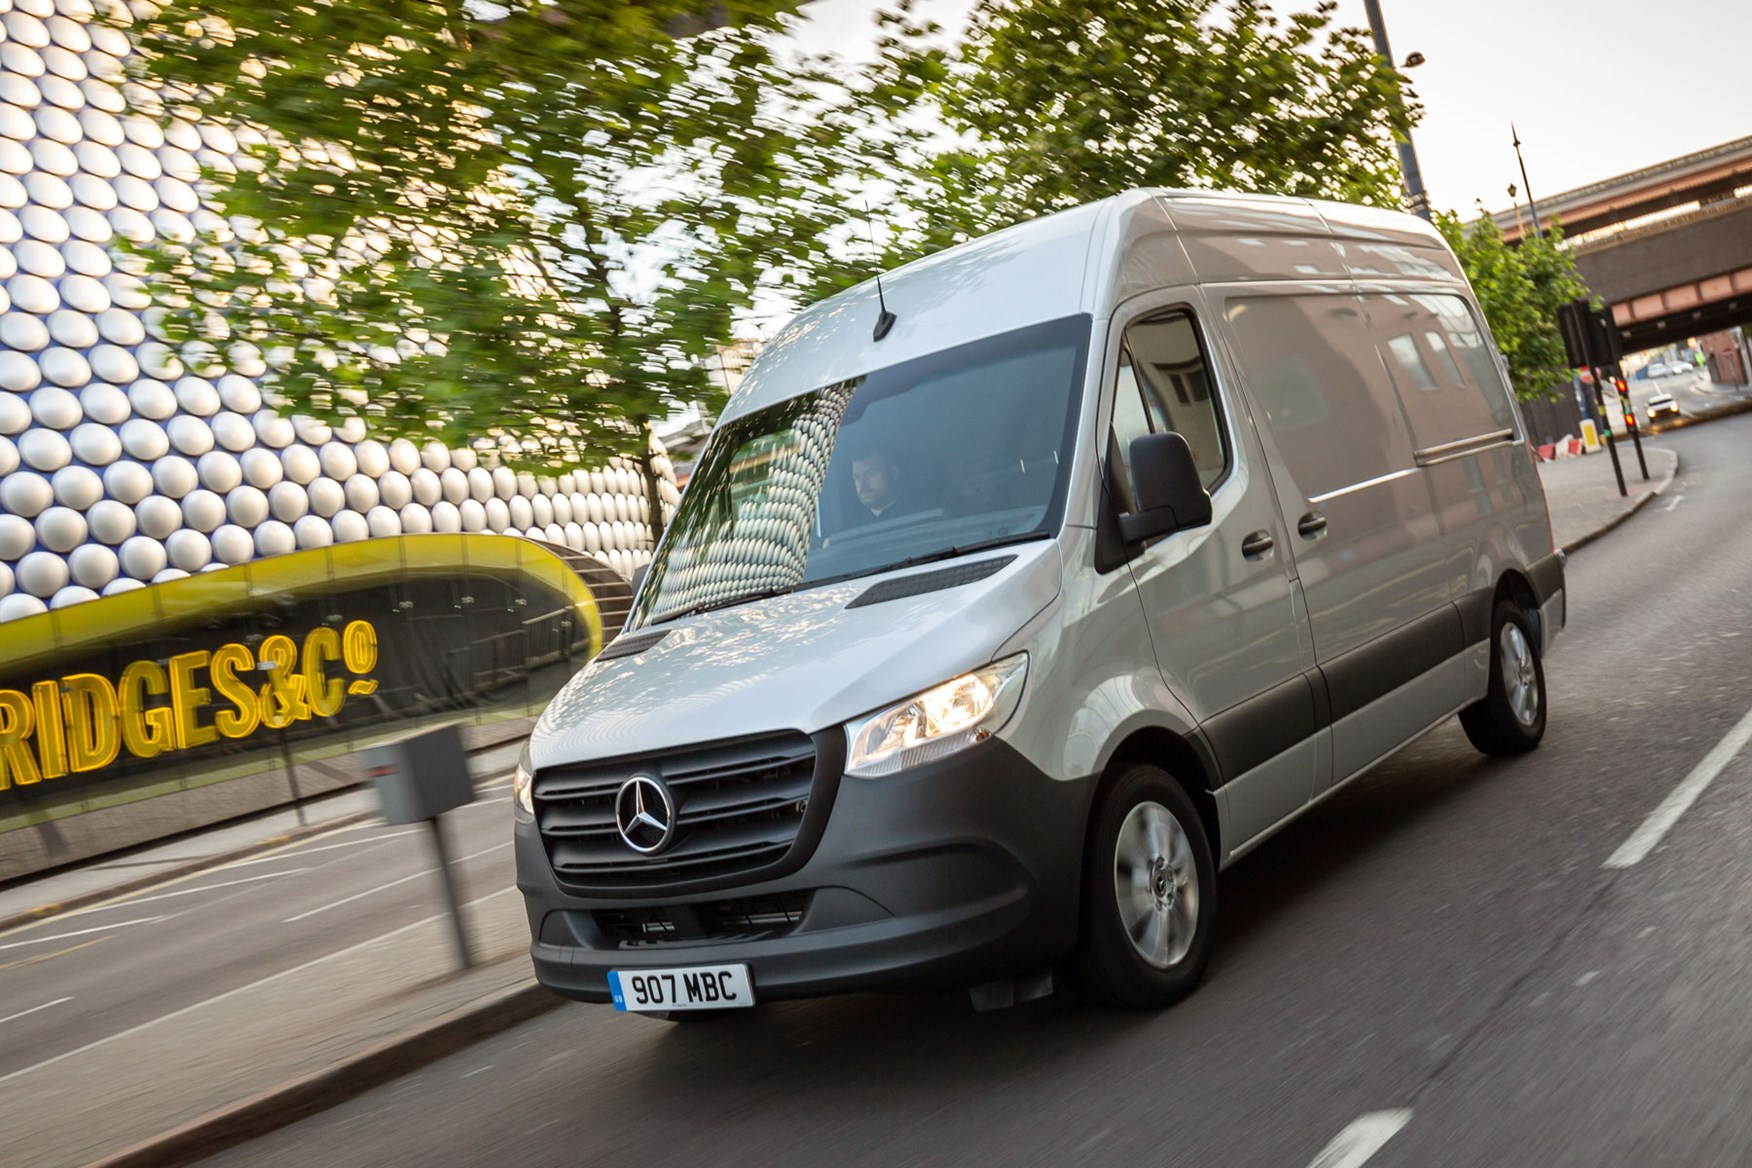 Mercedes Sprinter (2018-on), front view, silver, UK, driving